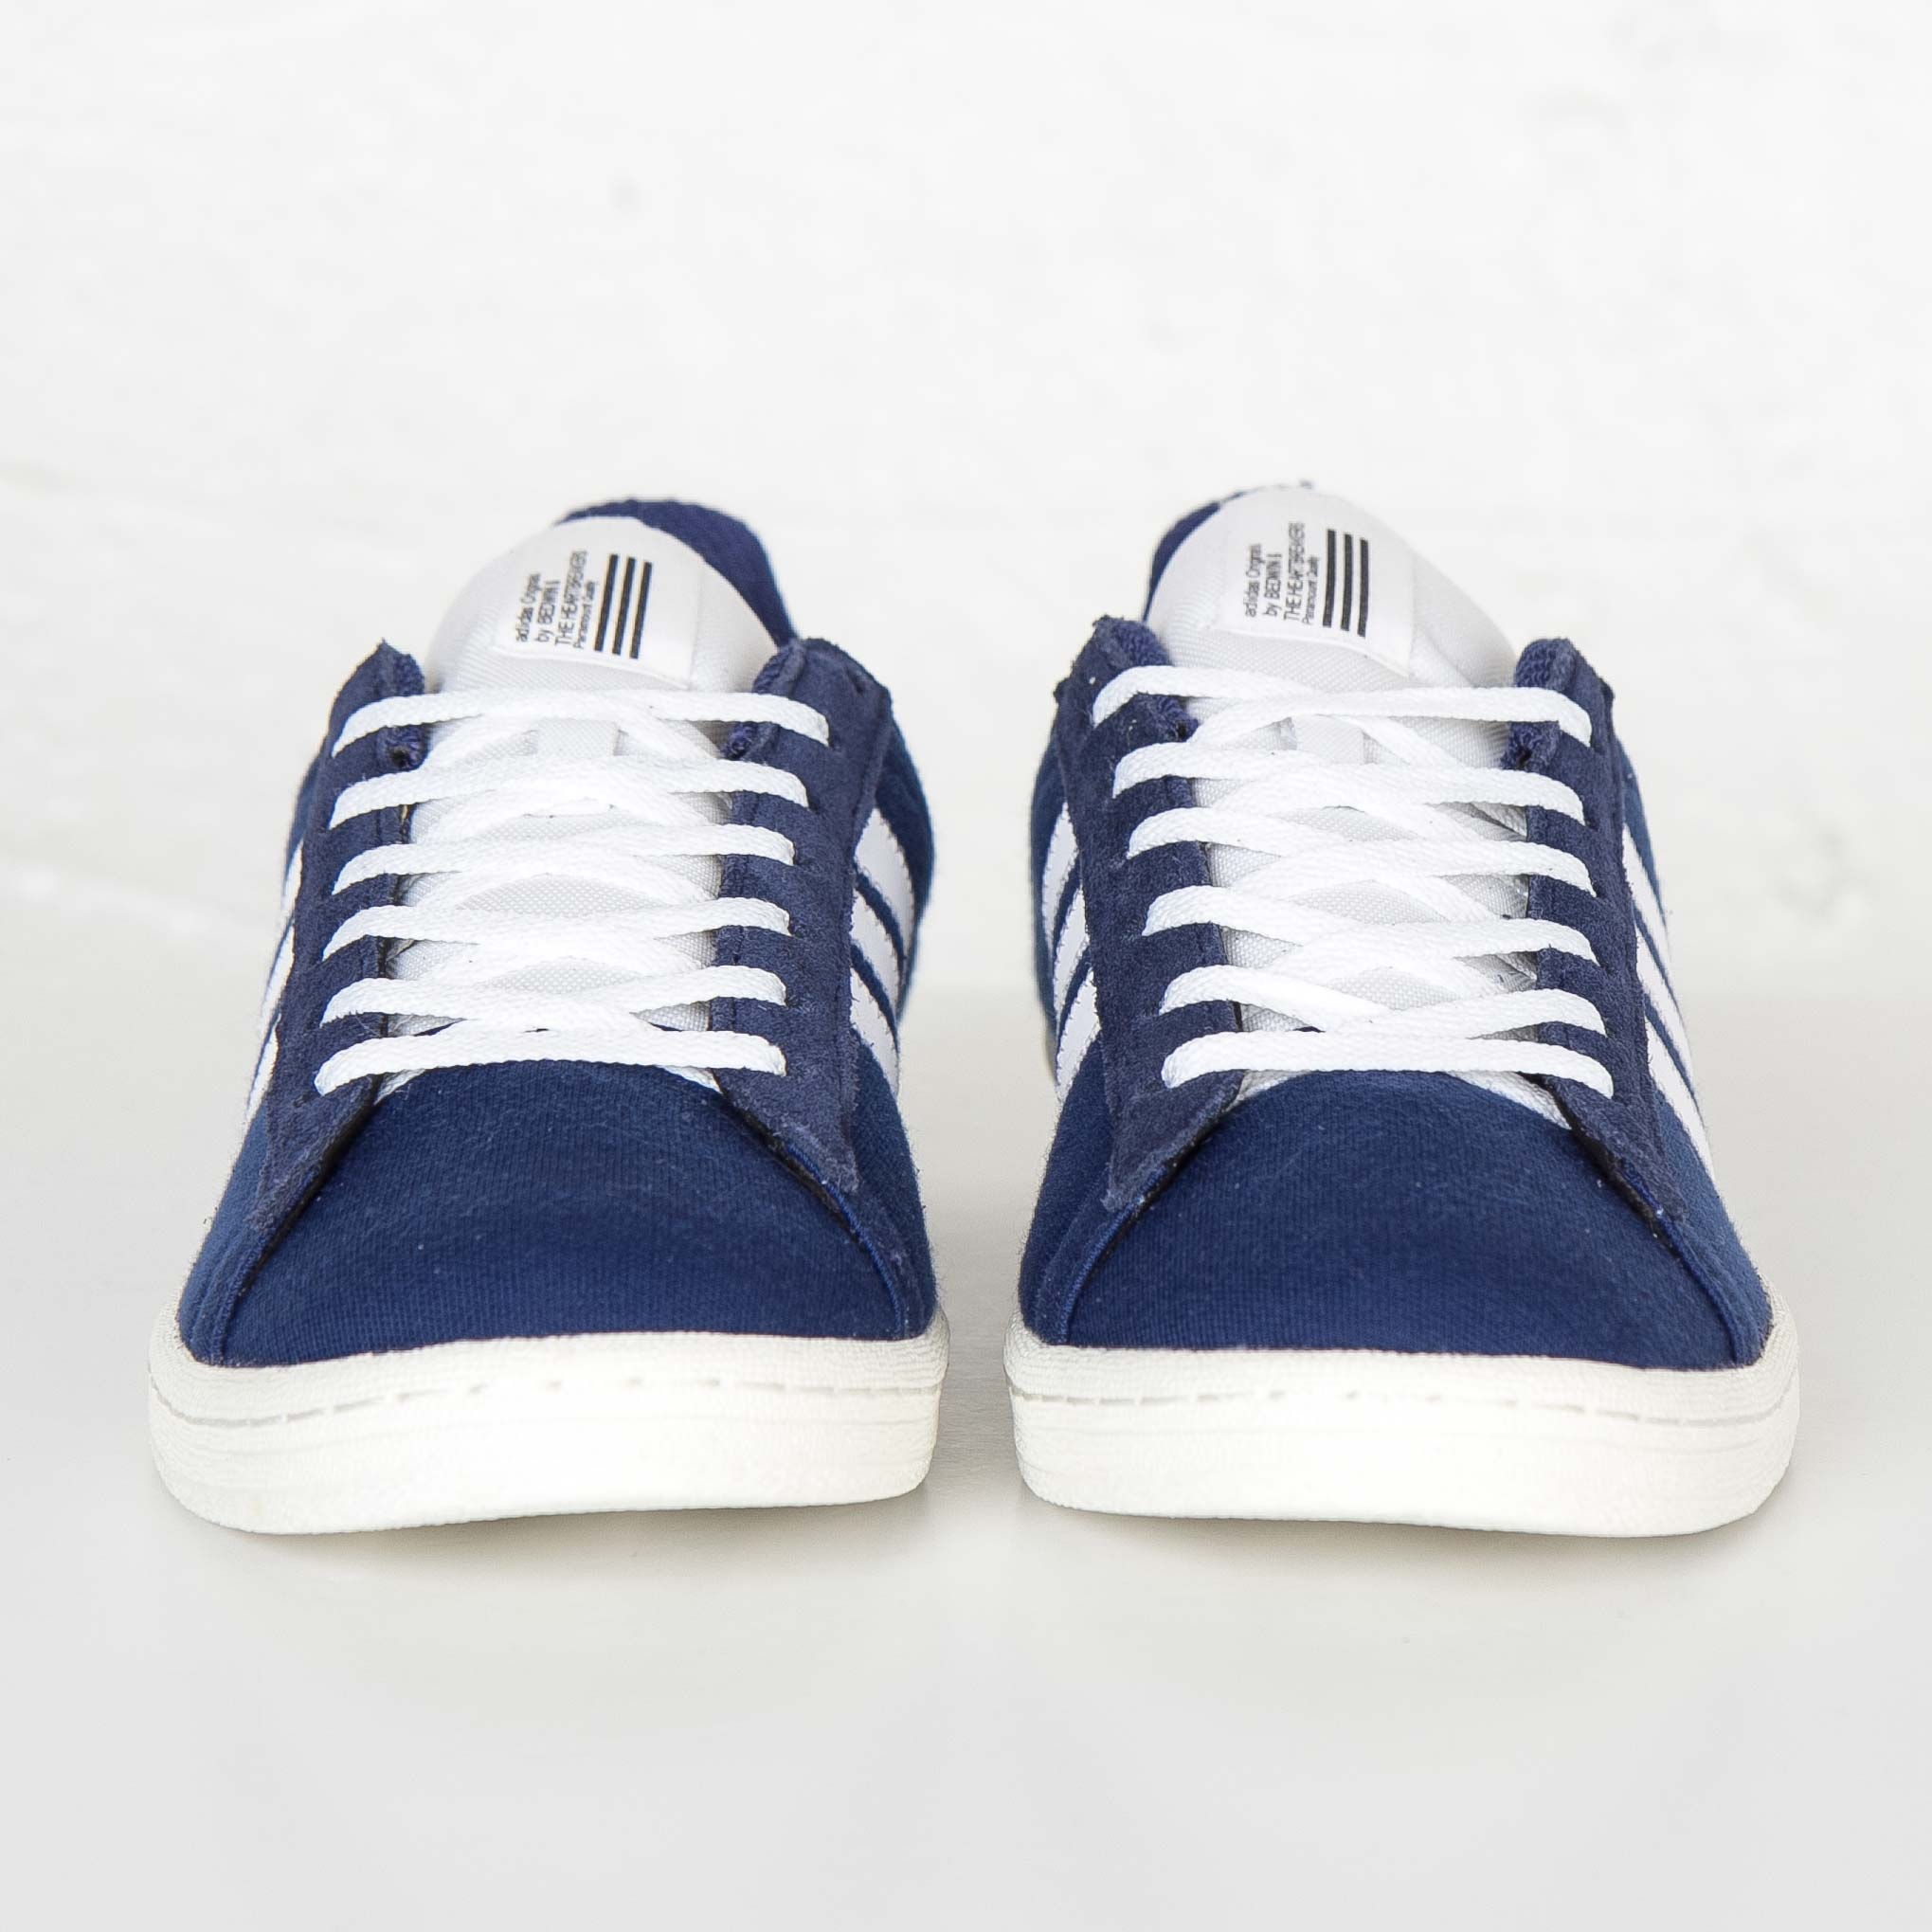 hot sale online 3d294 d8ebb adidas BW Campus 80s adidas BW Campus 80s ...